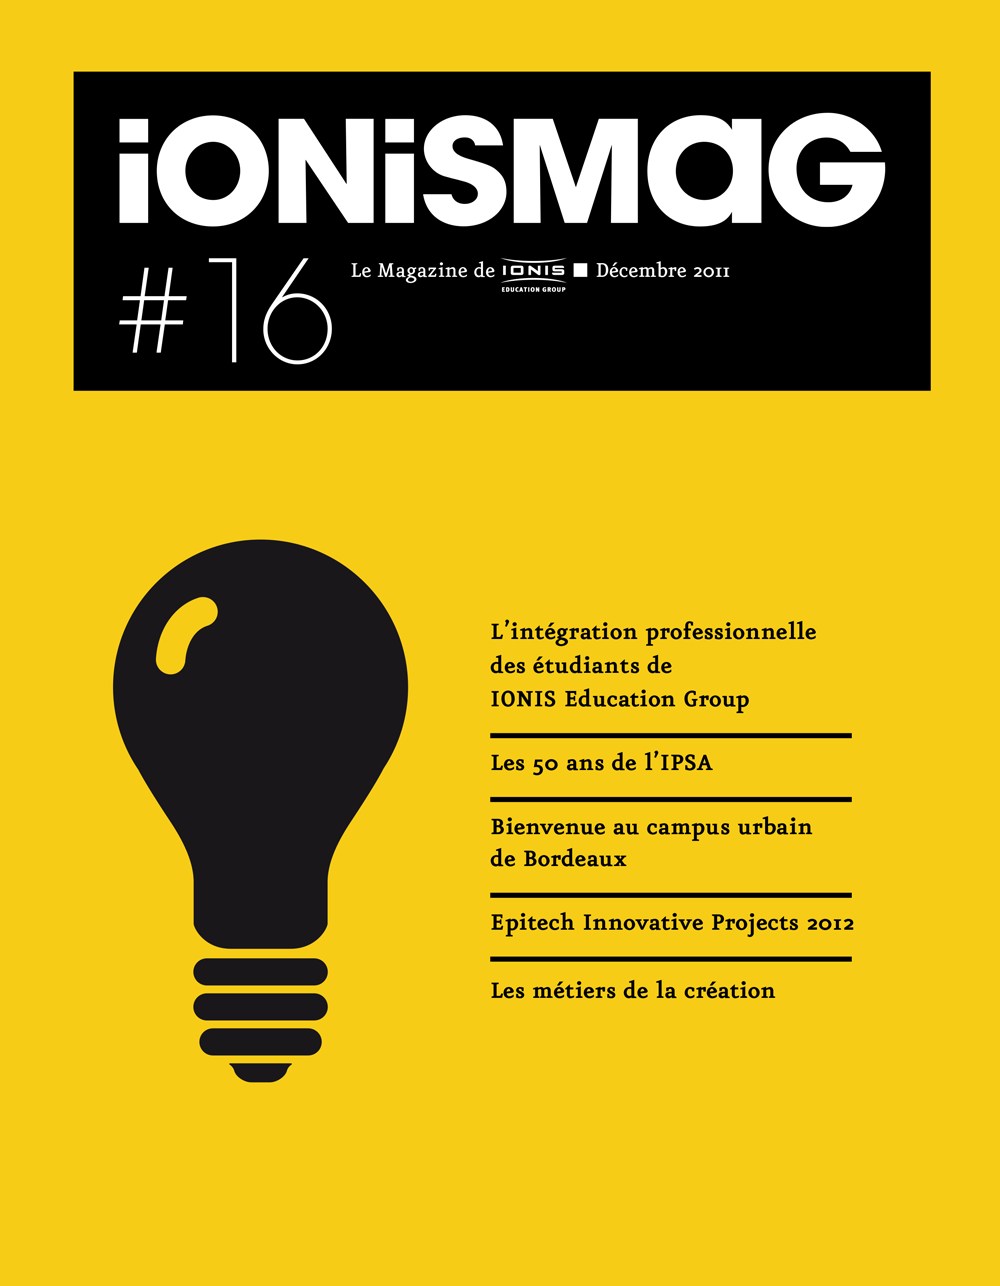 IONIS MAG 16